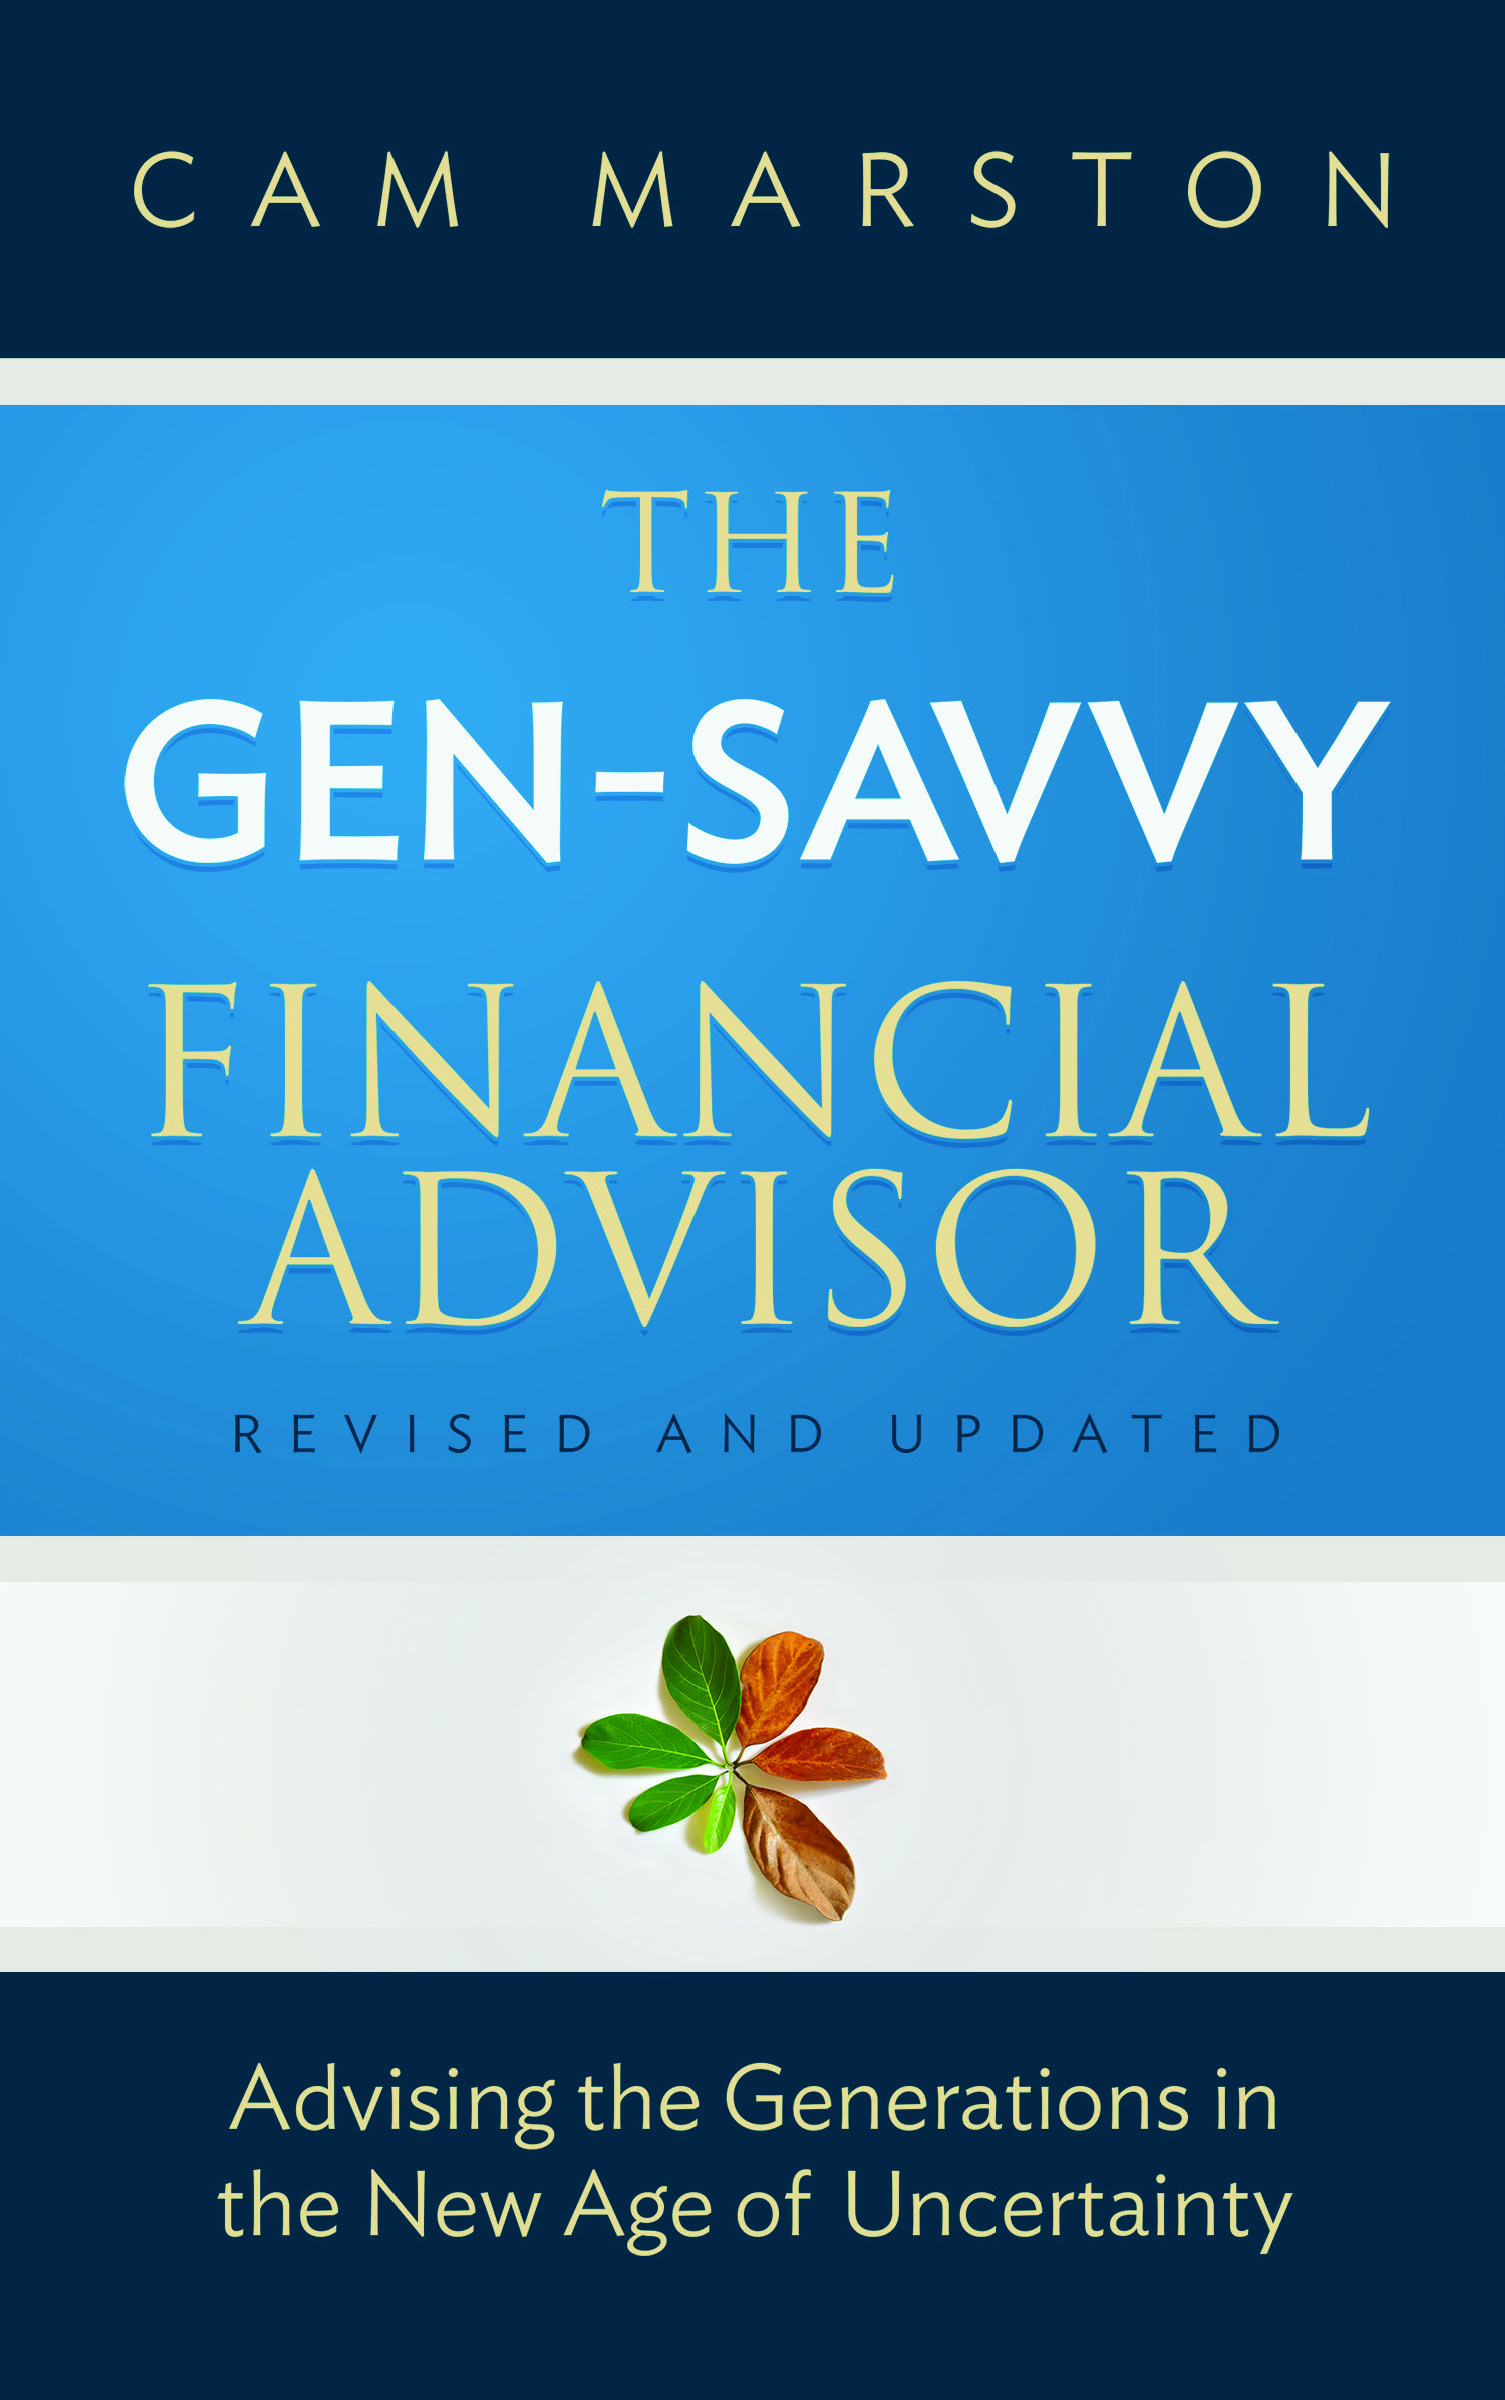 The Gen-Savvy Financial Advisor